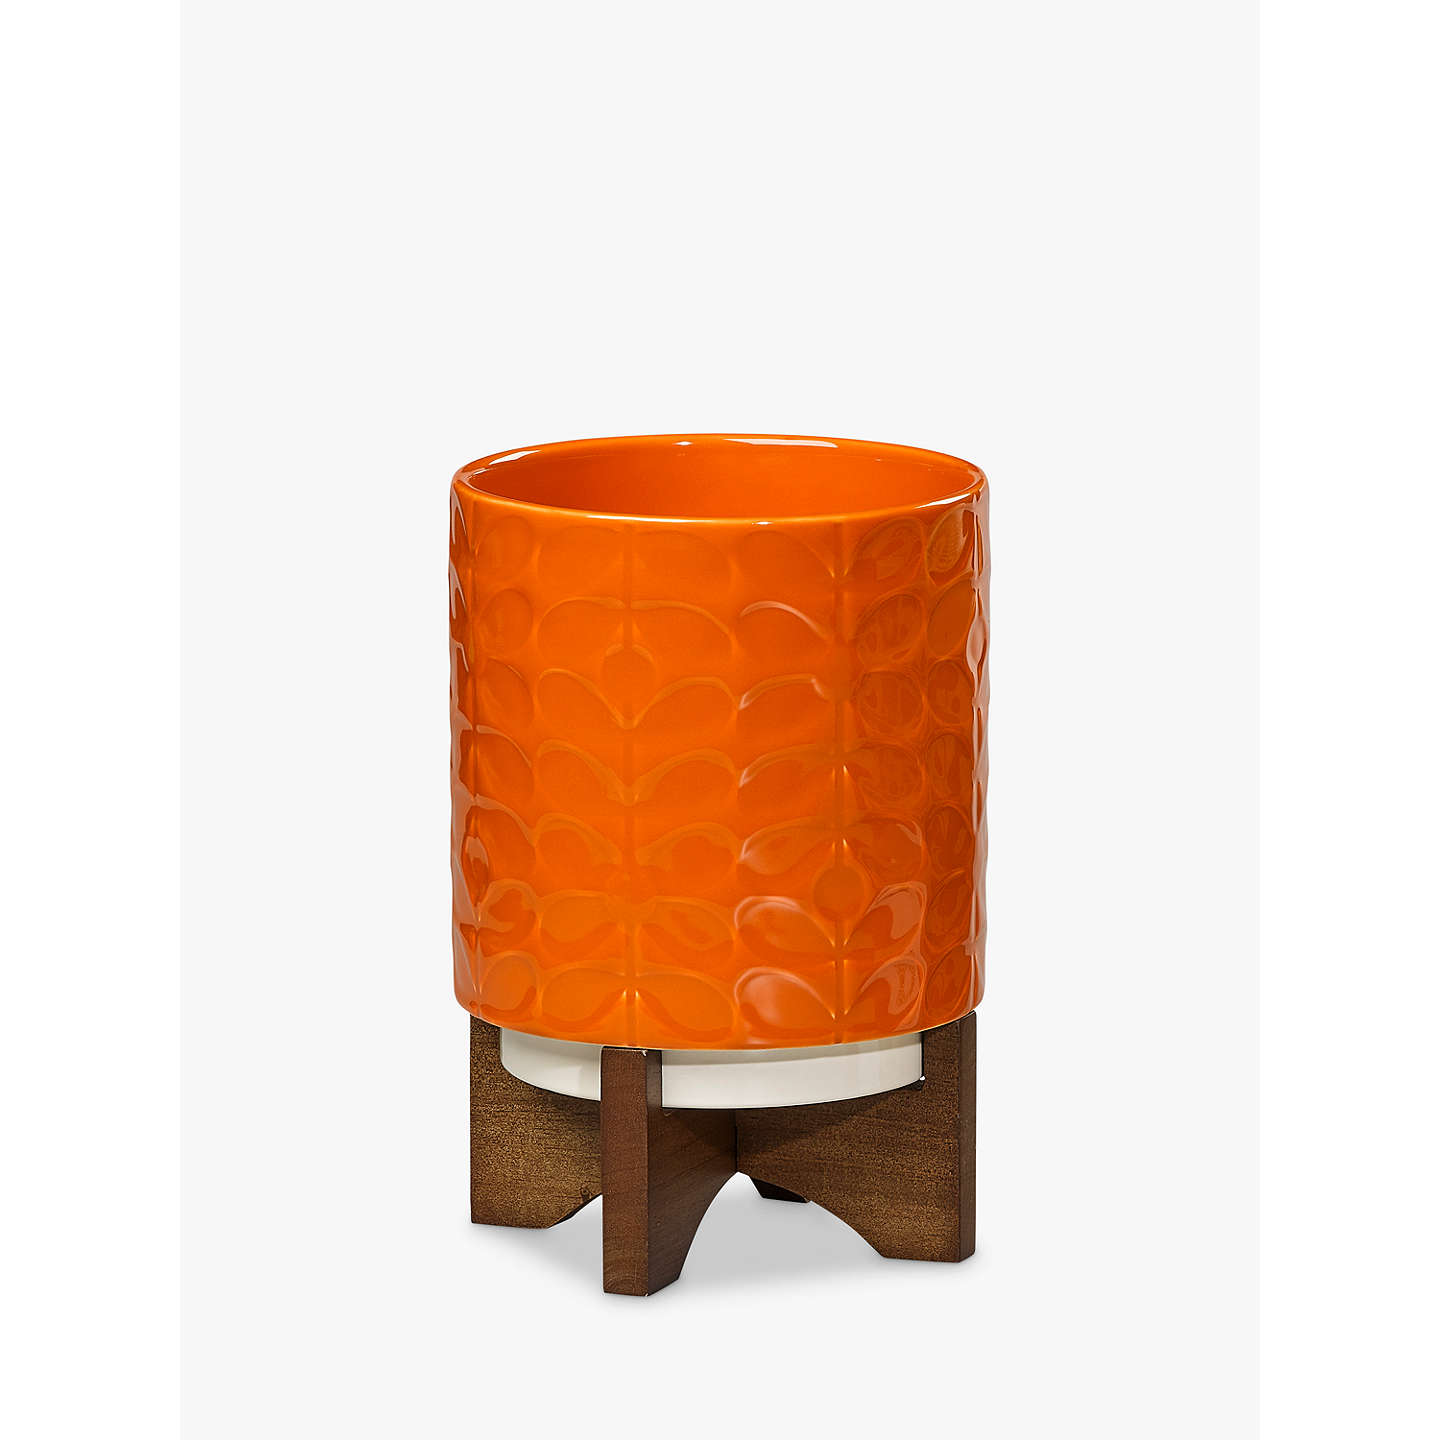 Buyorla Kiely Ceramic Pot With Wooden Stand, Dark Papaya Online